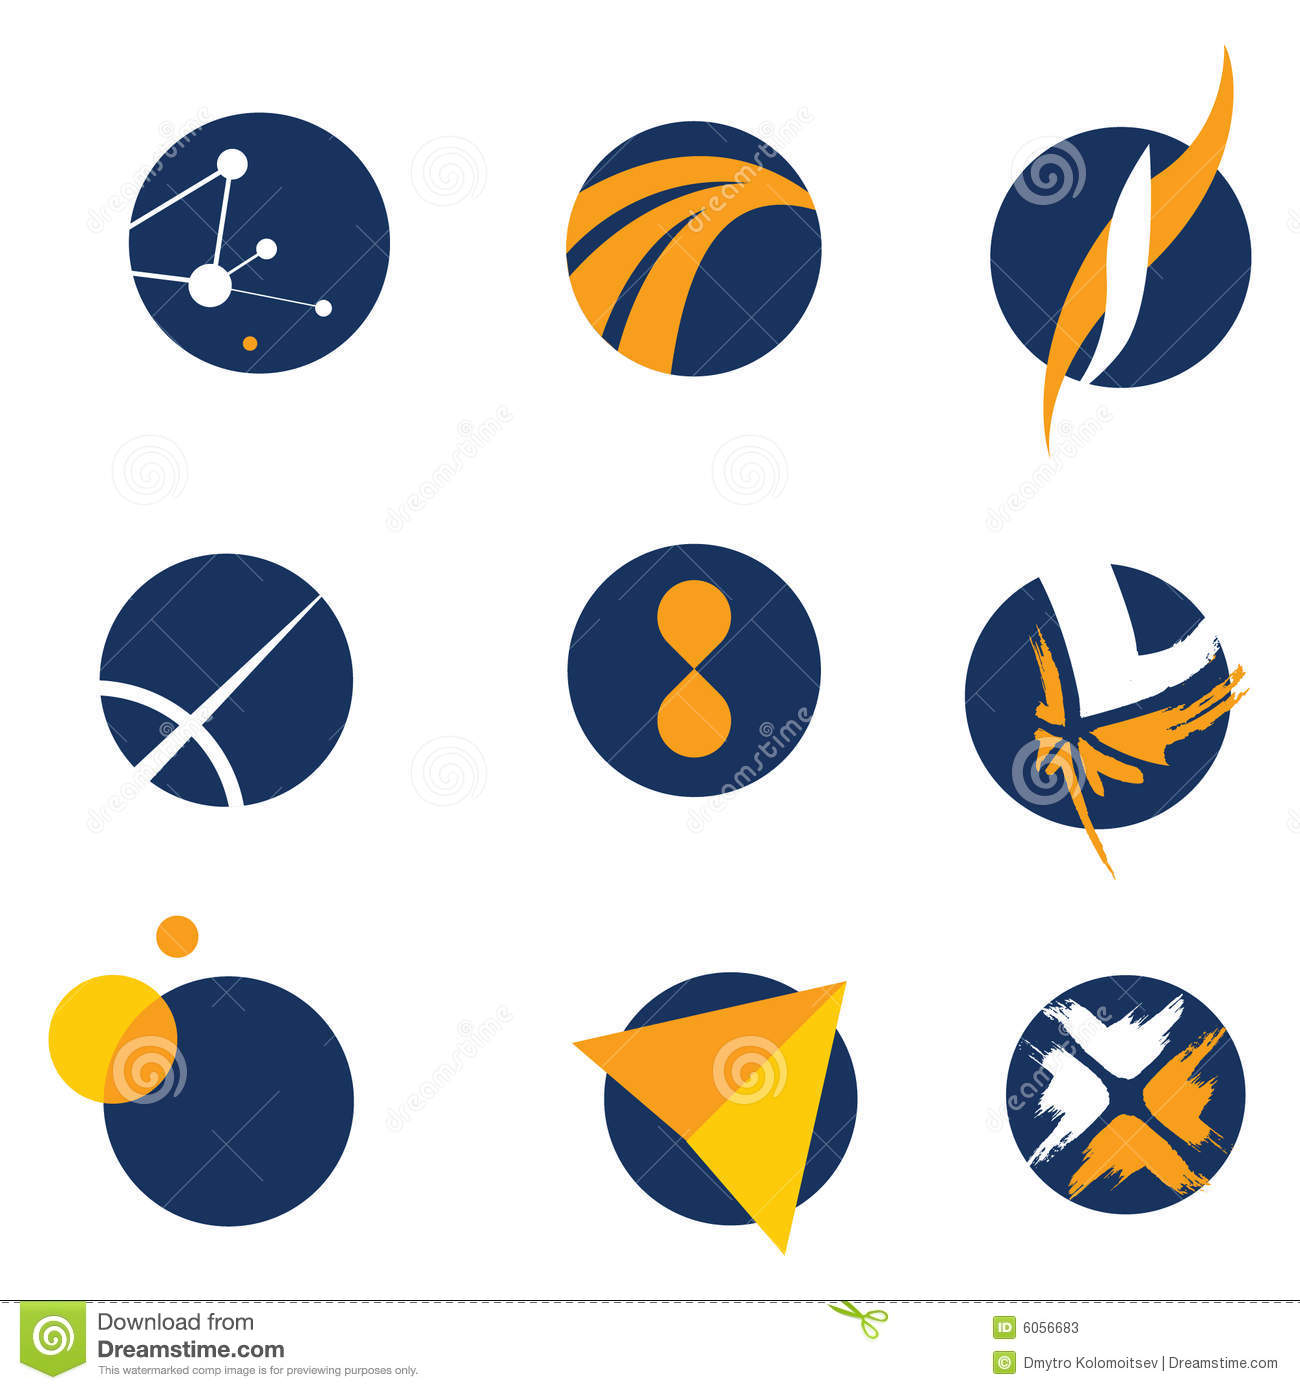 ... logo and other design matters related to flights, travel, space, etc